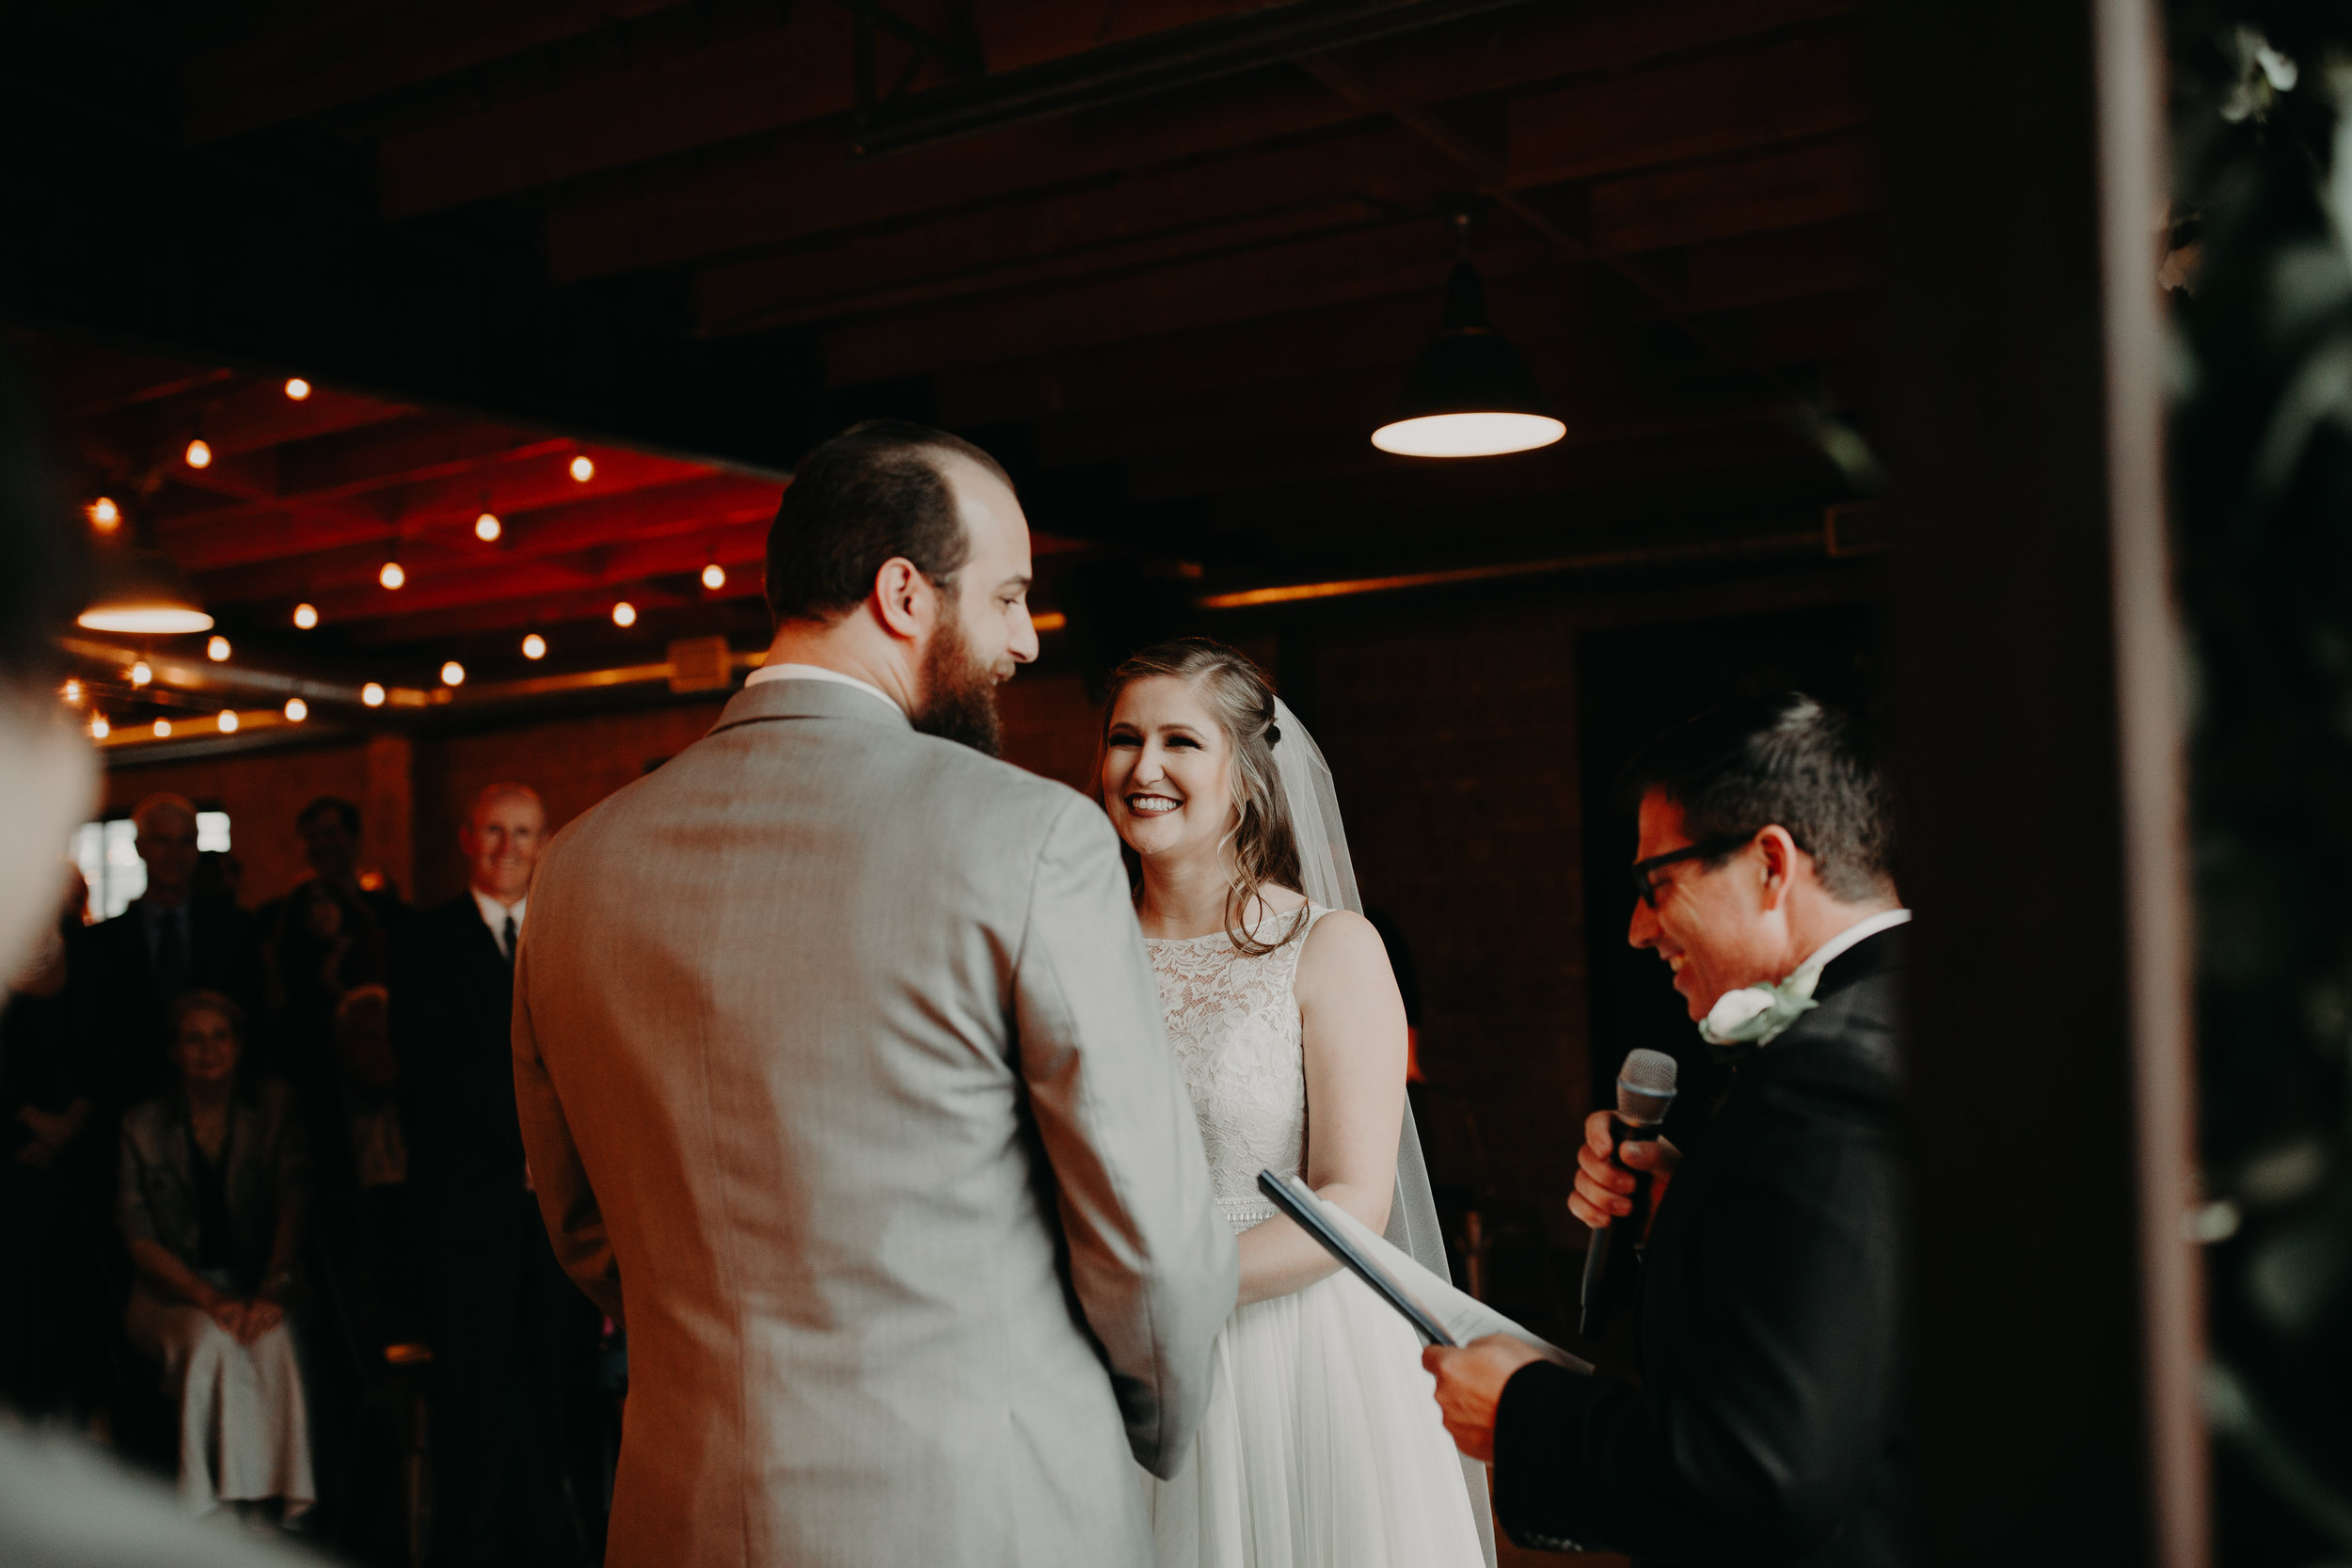 Smoky Hollow Studios Wedding Anne & Lewis Emily Magers Photography-616.jpg